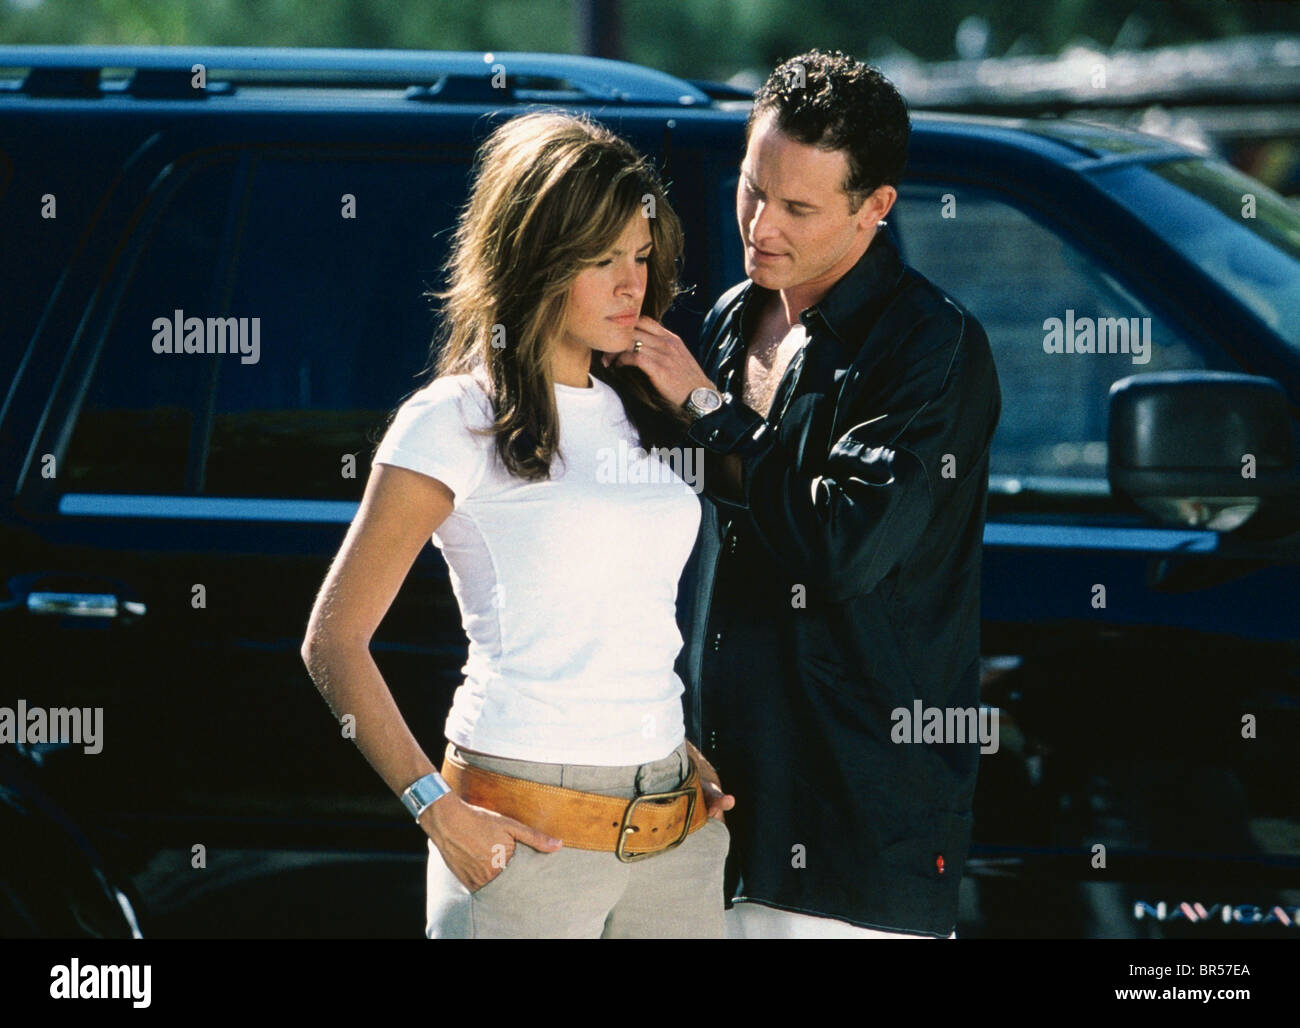 EVA MENDES COLE HAUSER 2 FAST FURIOUS THE AND 2003